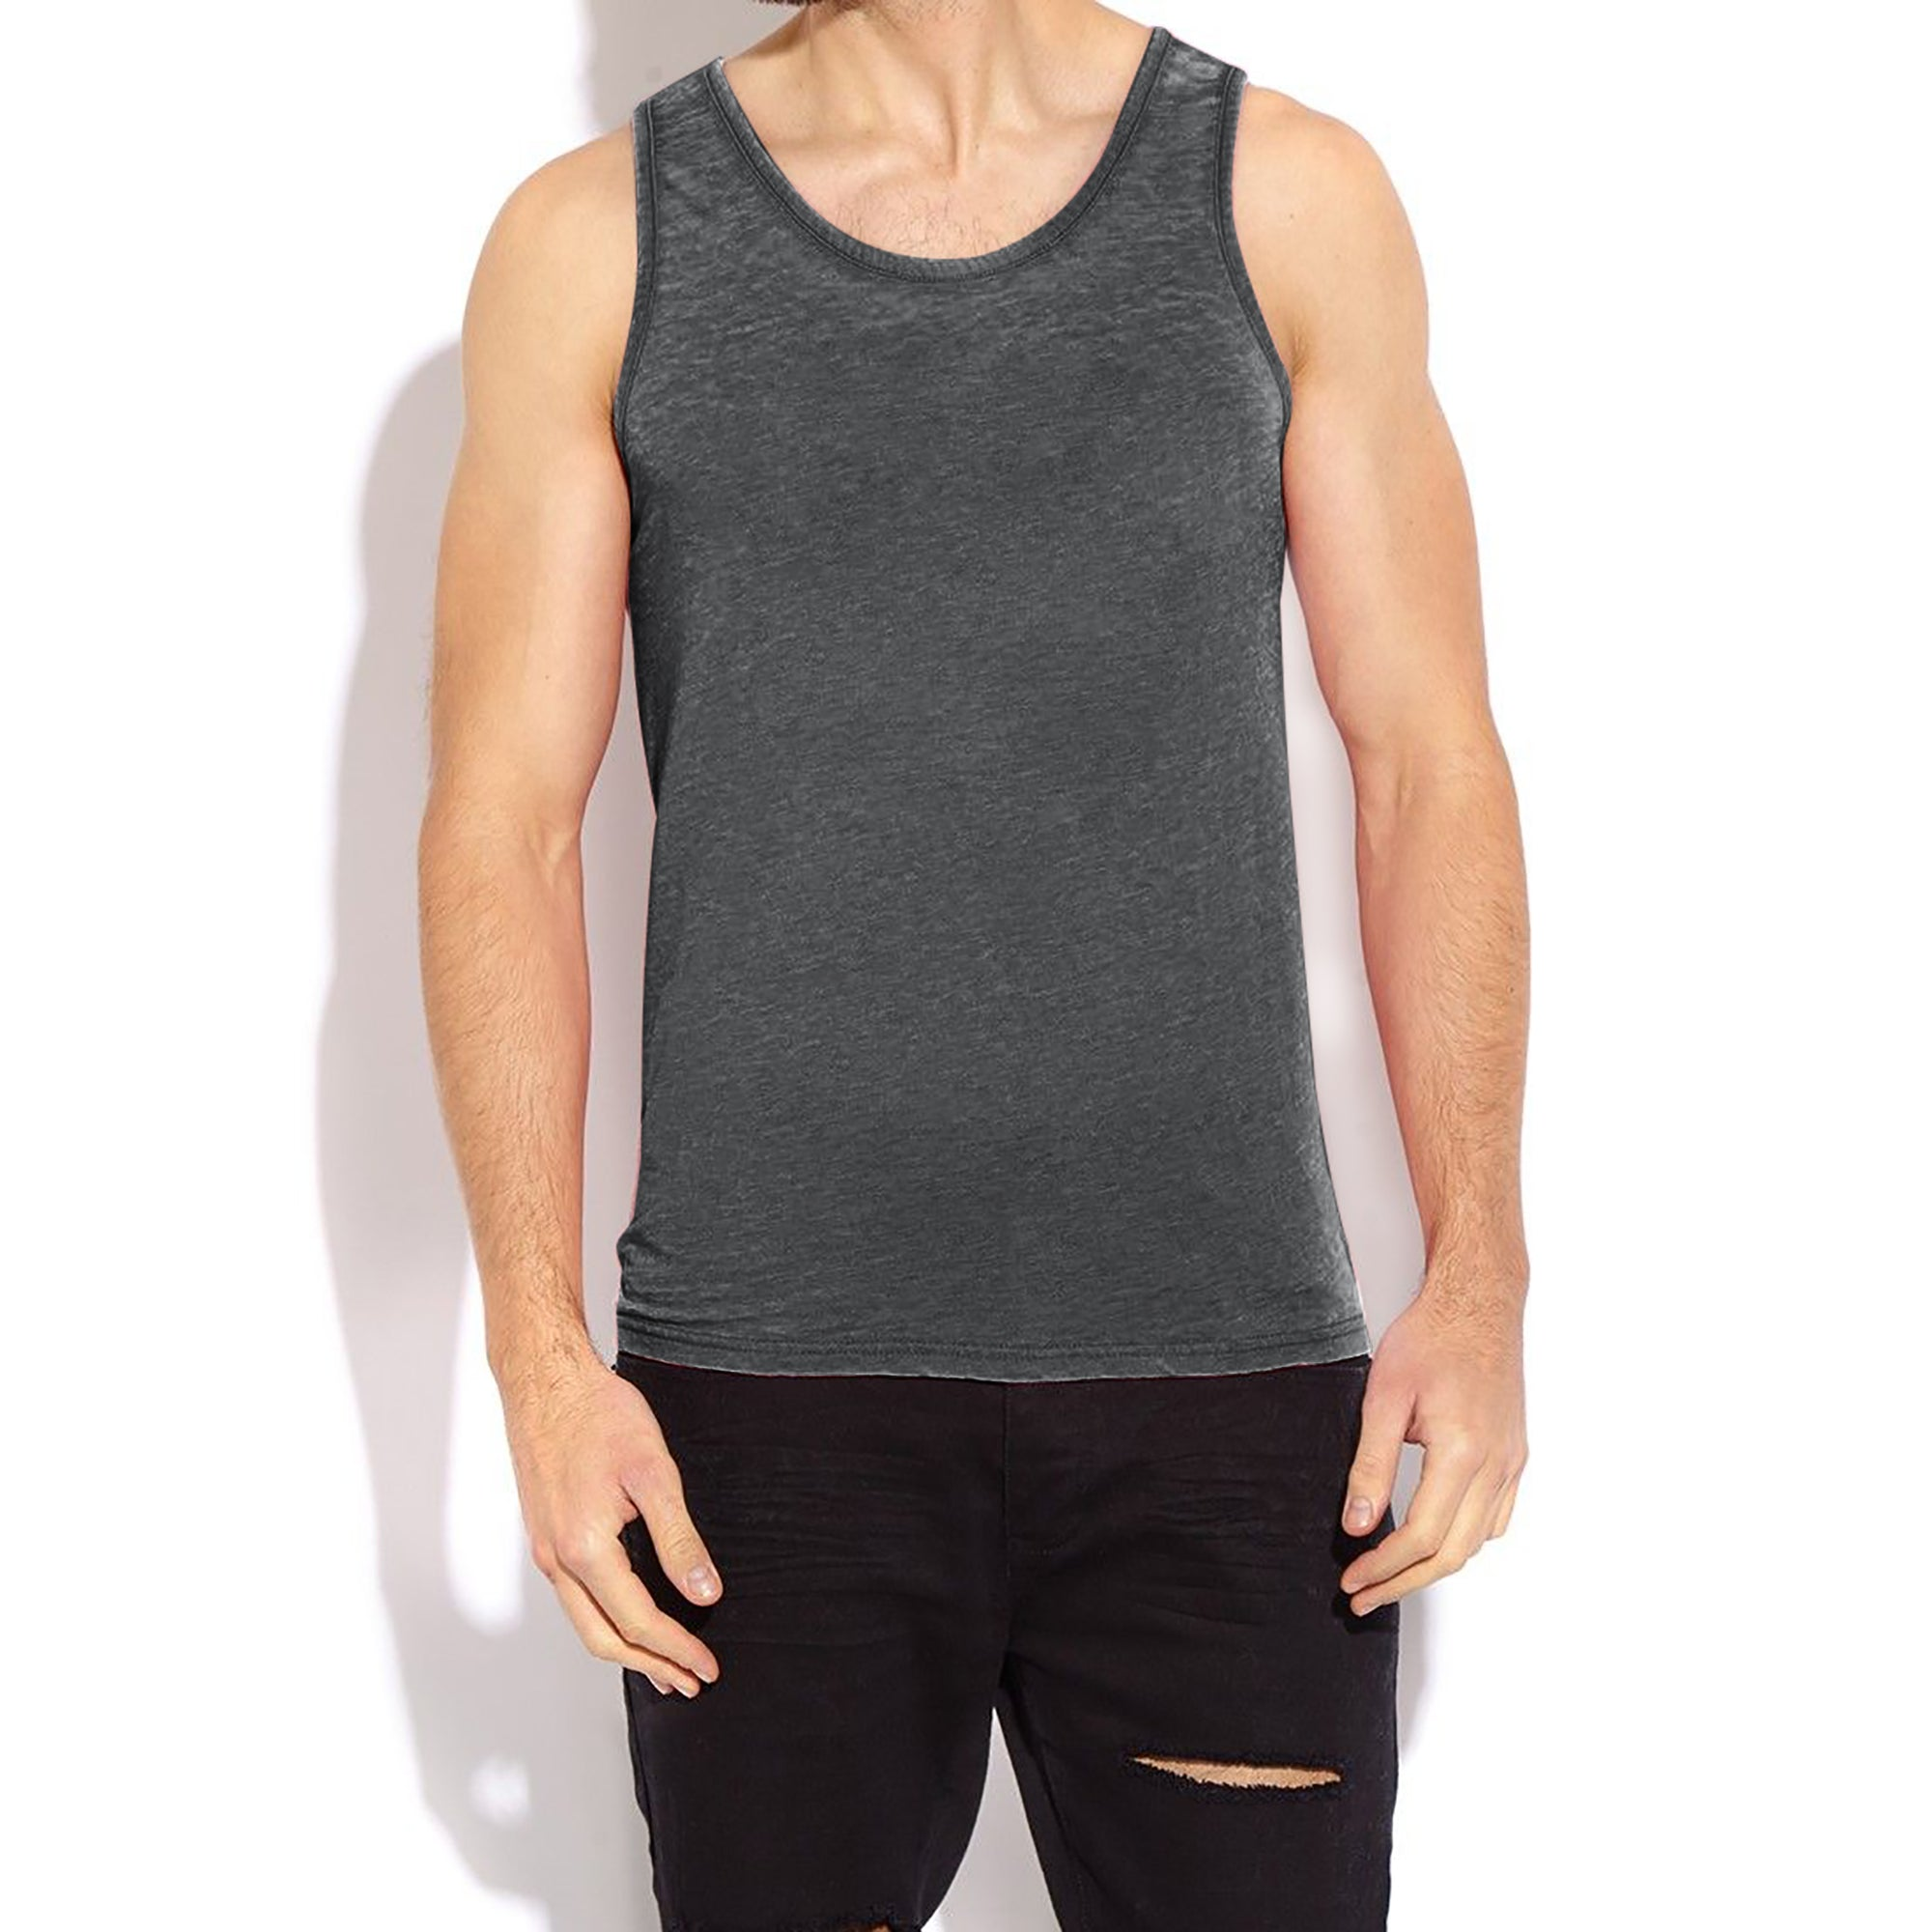 River Island Sleeveless Burnout Vest For Men-Charcoal-BE7419